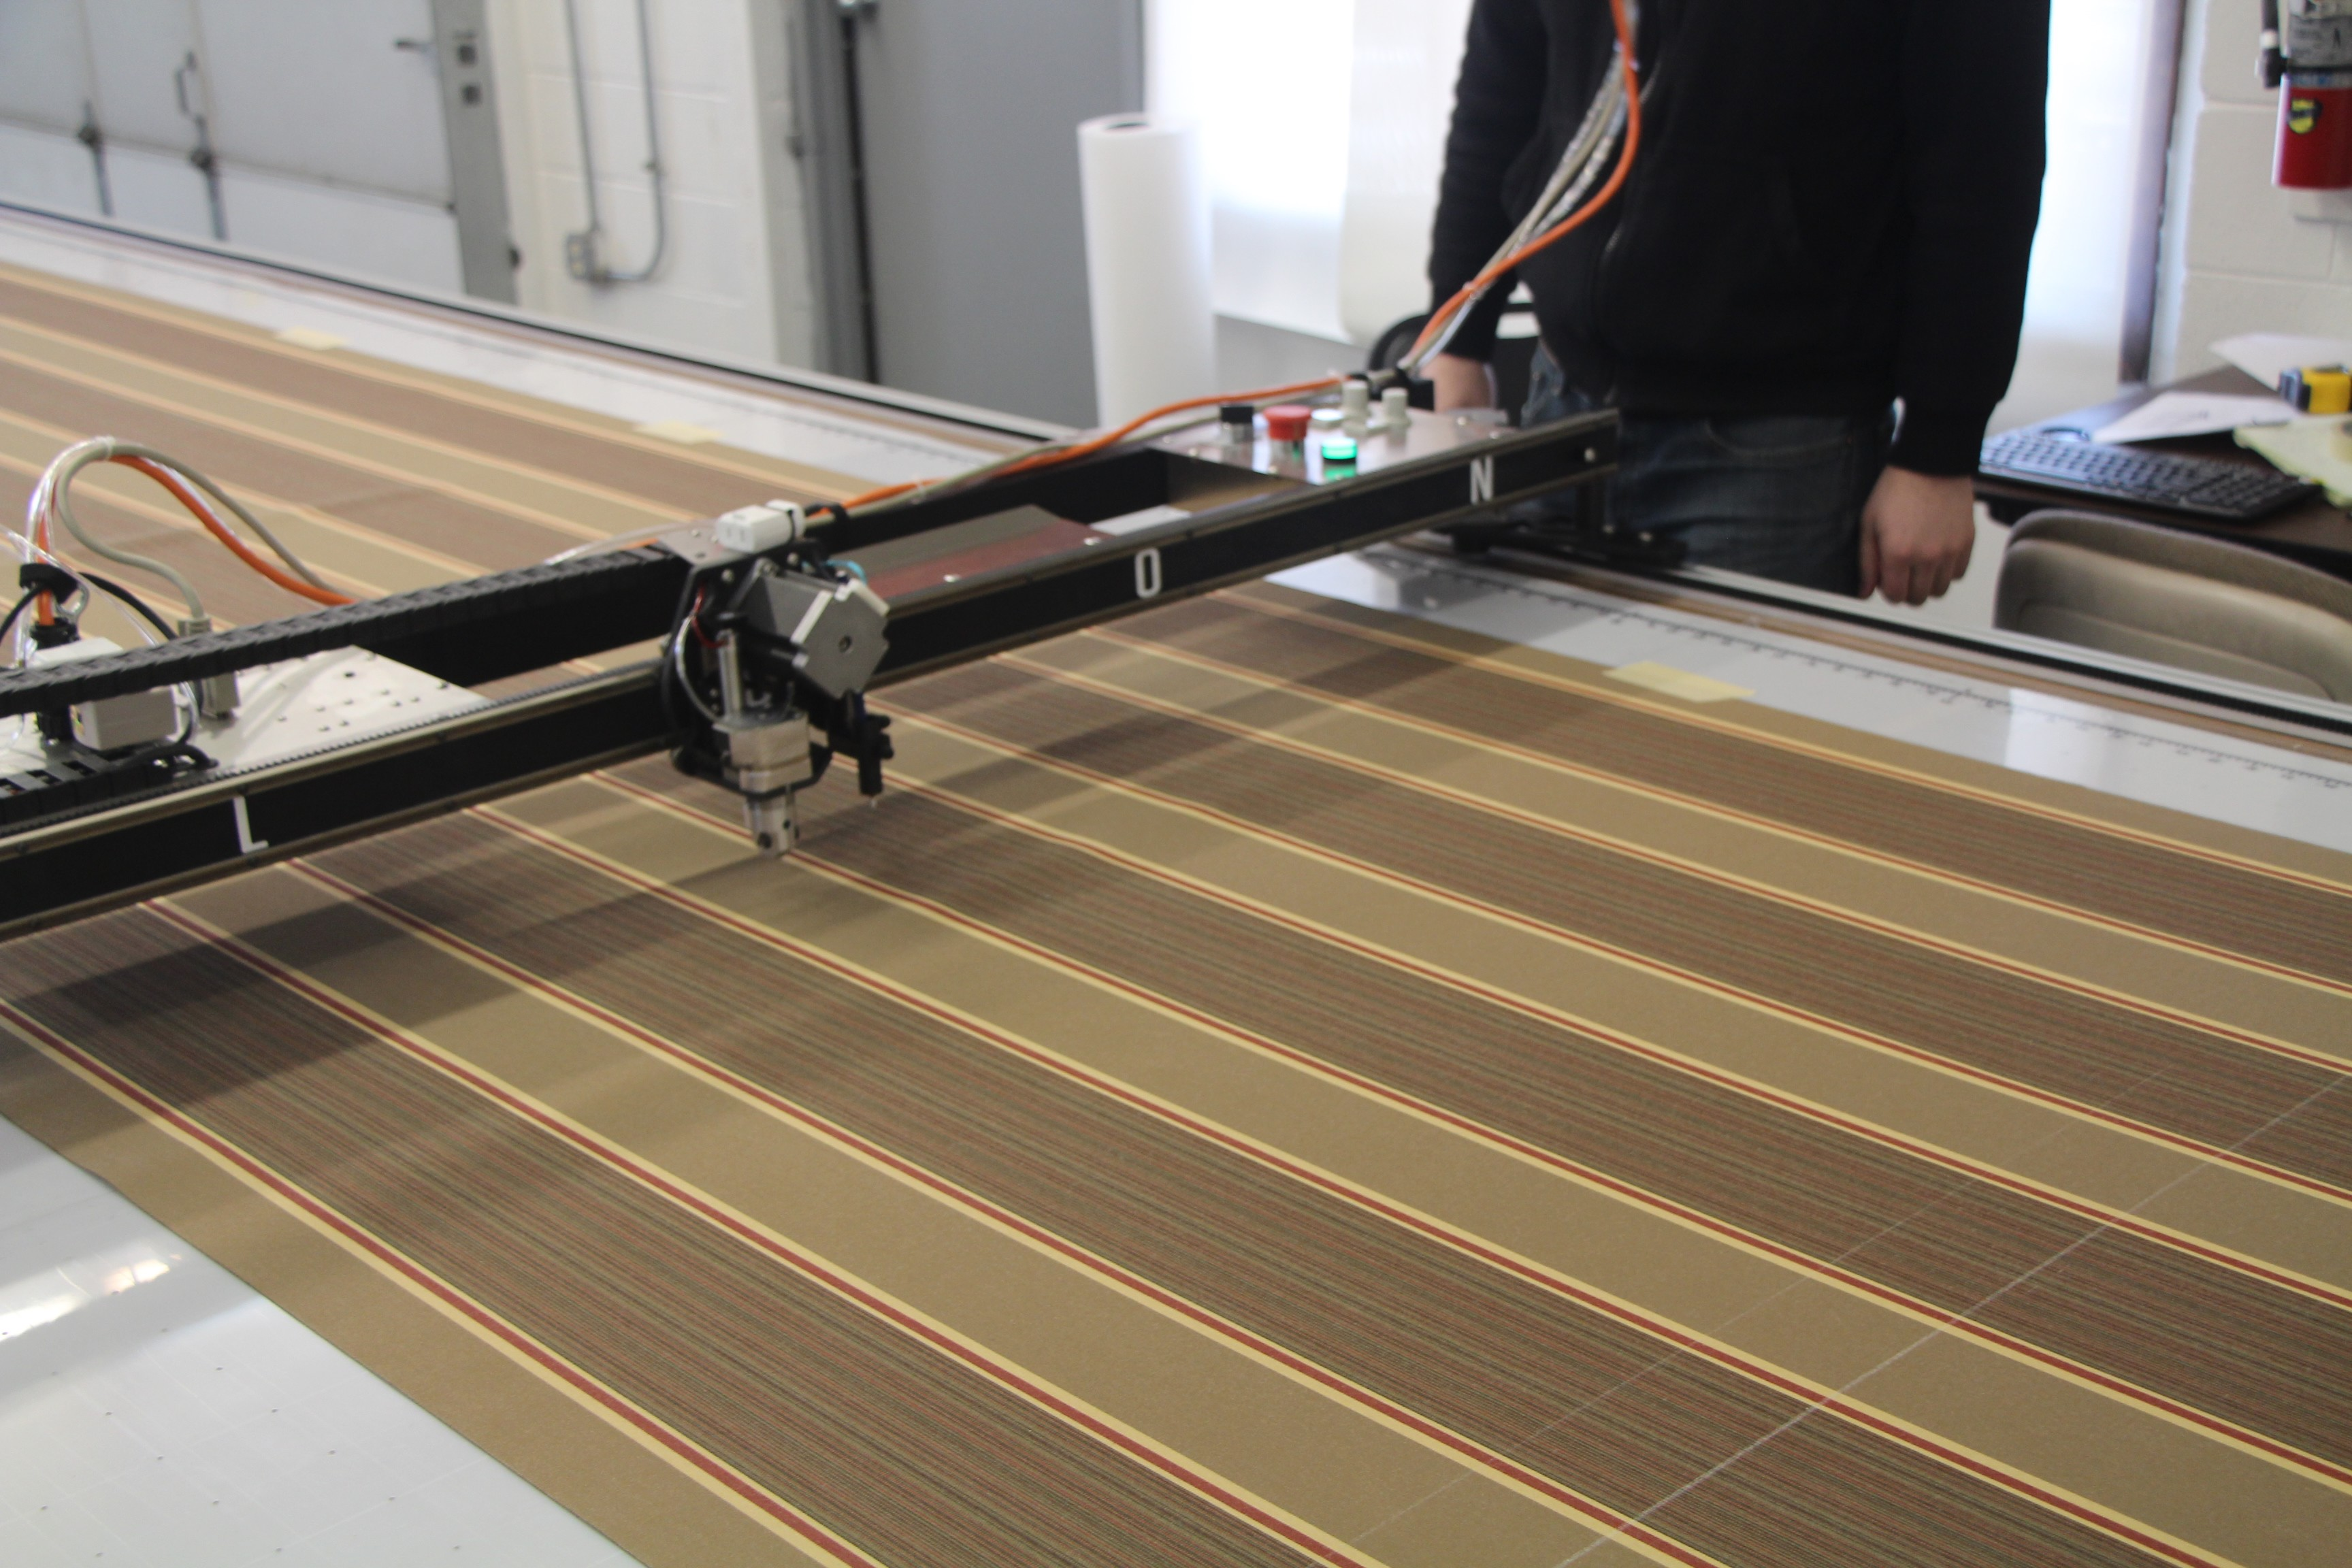 While nesting our pattern in Carlson Design's Plotmaster software, we account for the striped pattern and it's repeat.